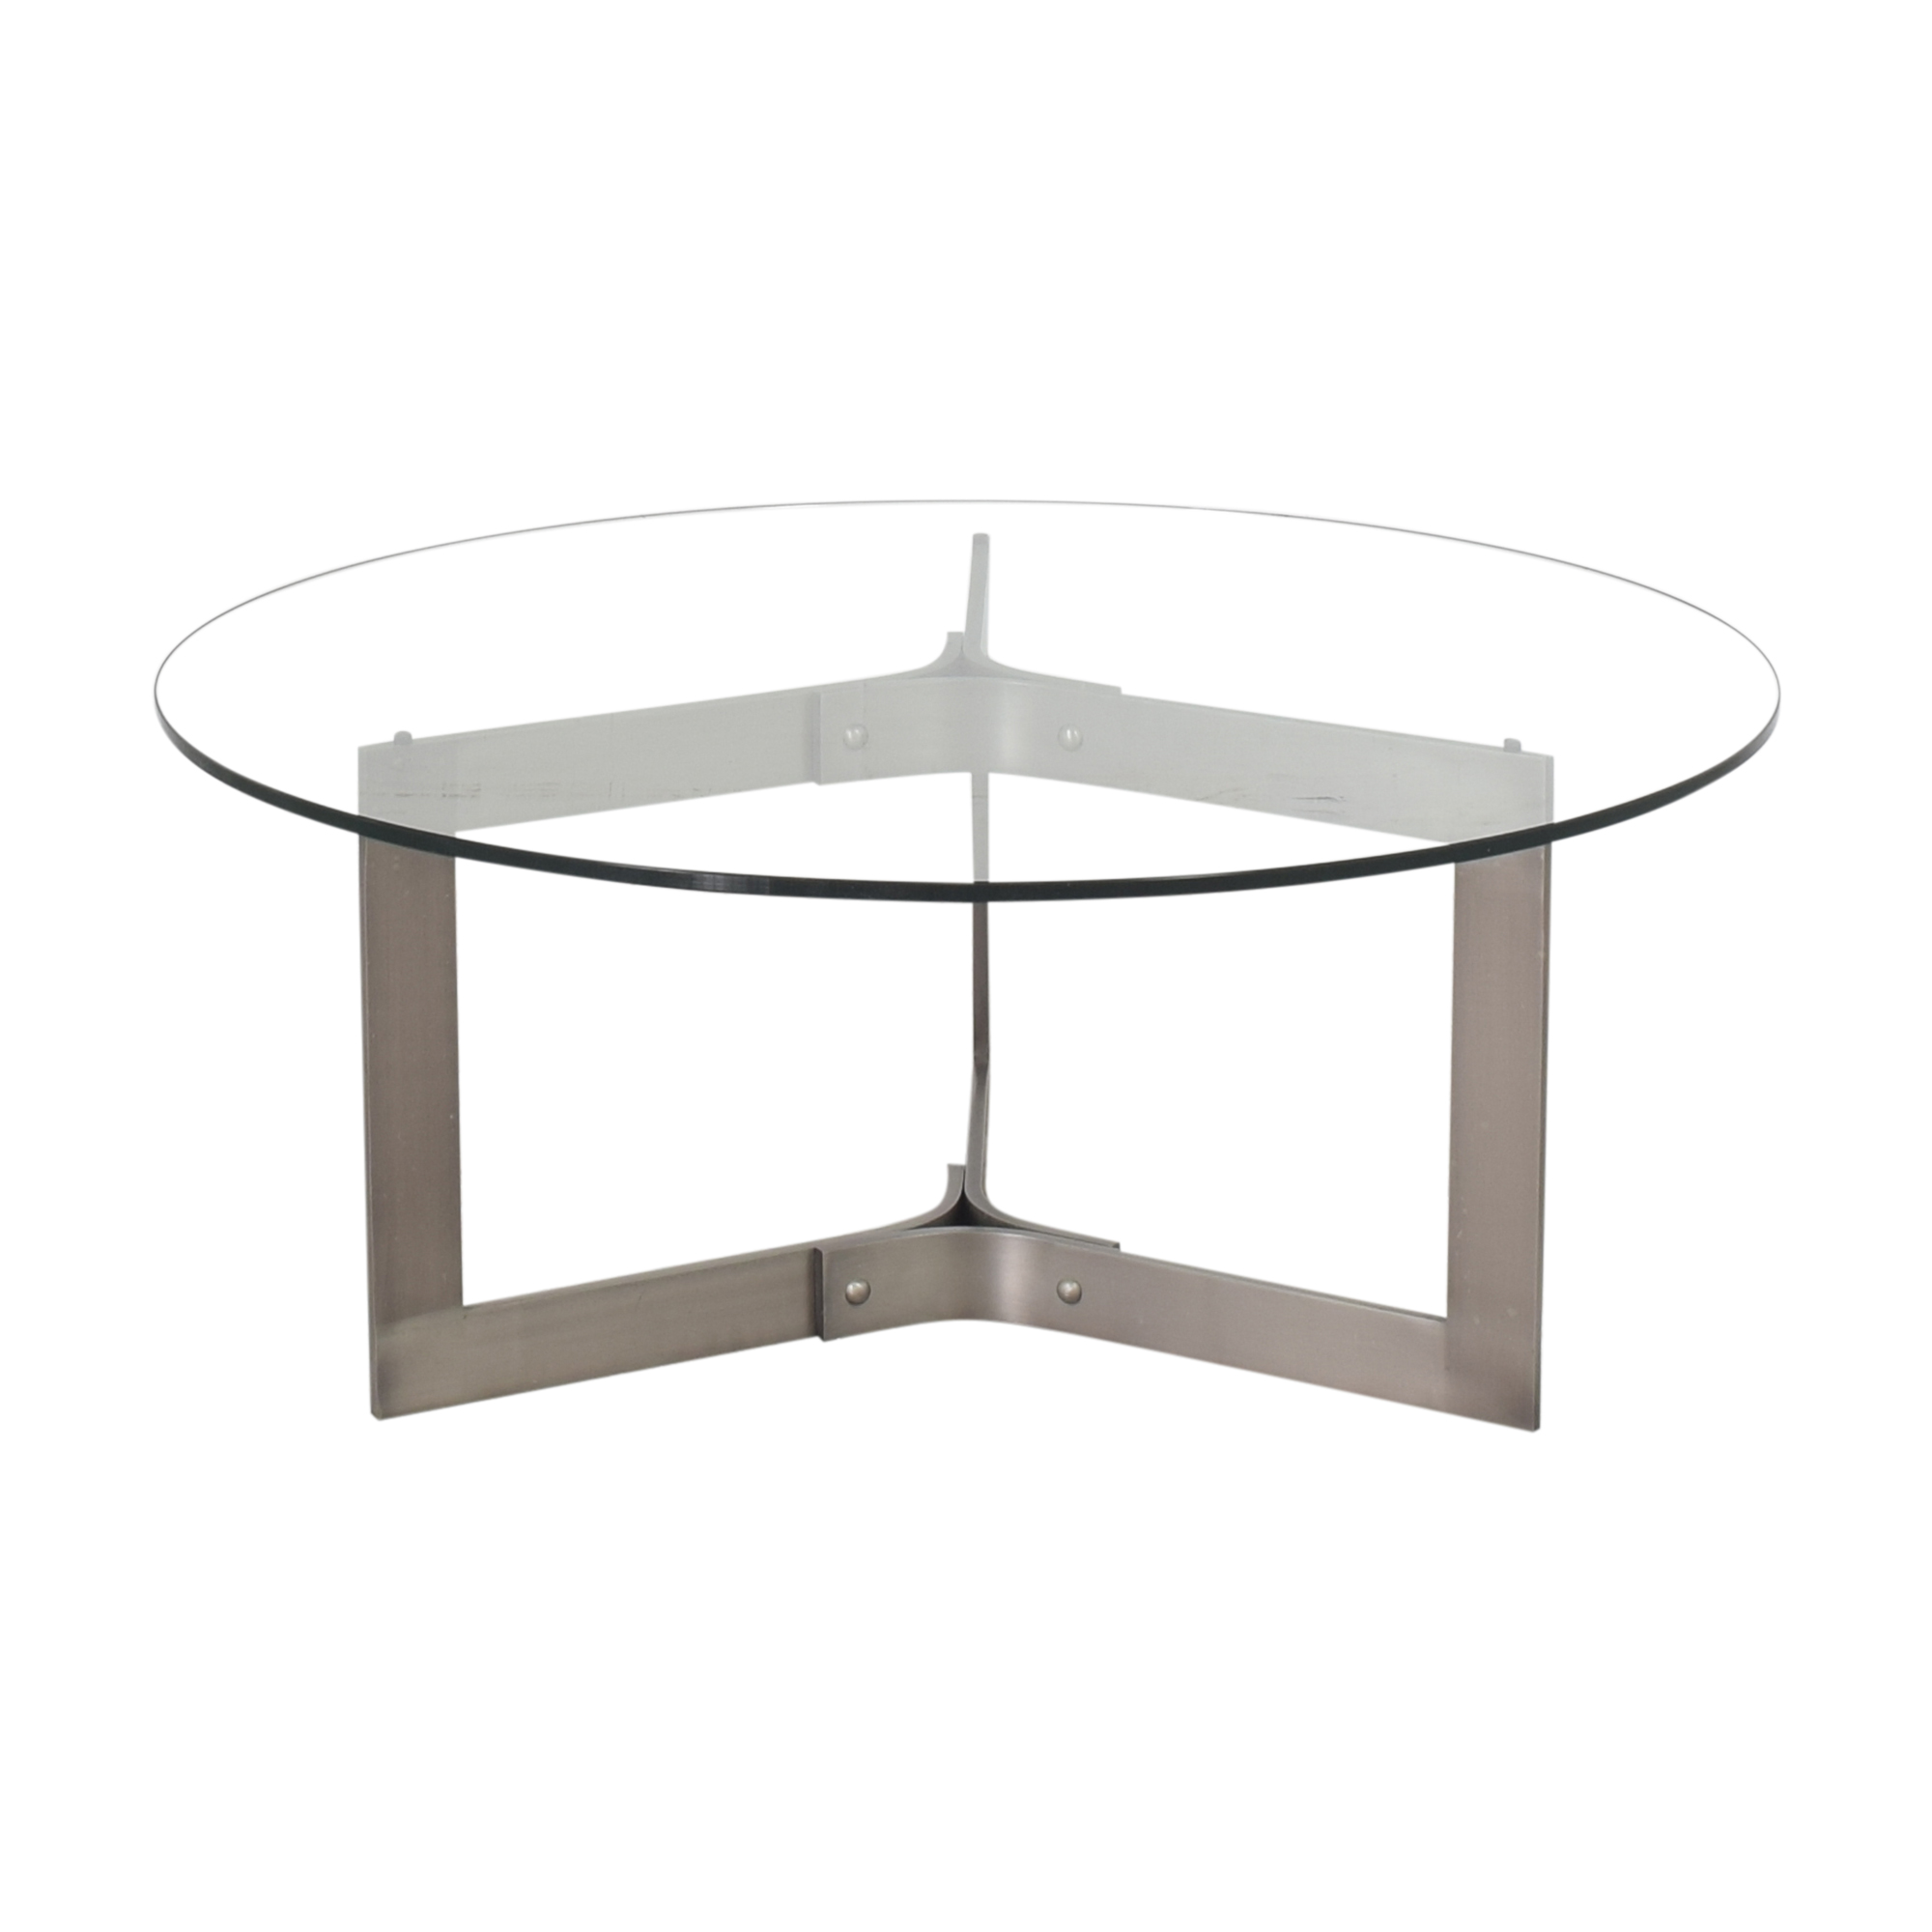 Crate & Barrel Crate & Barrel Round Coffee Table with Transparent Surface discount